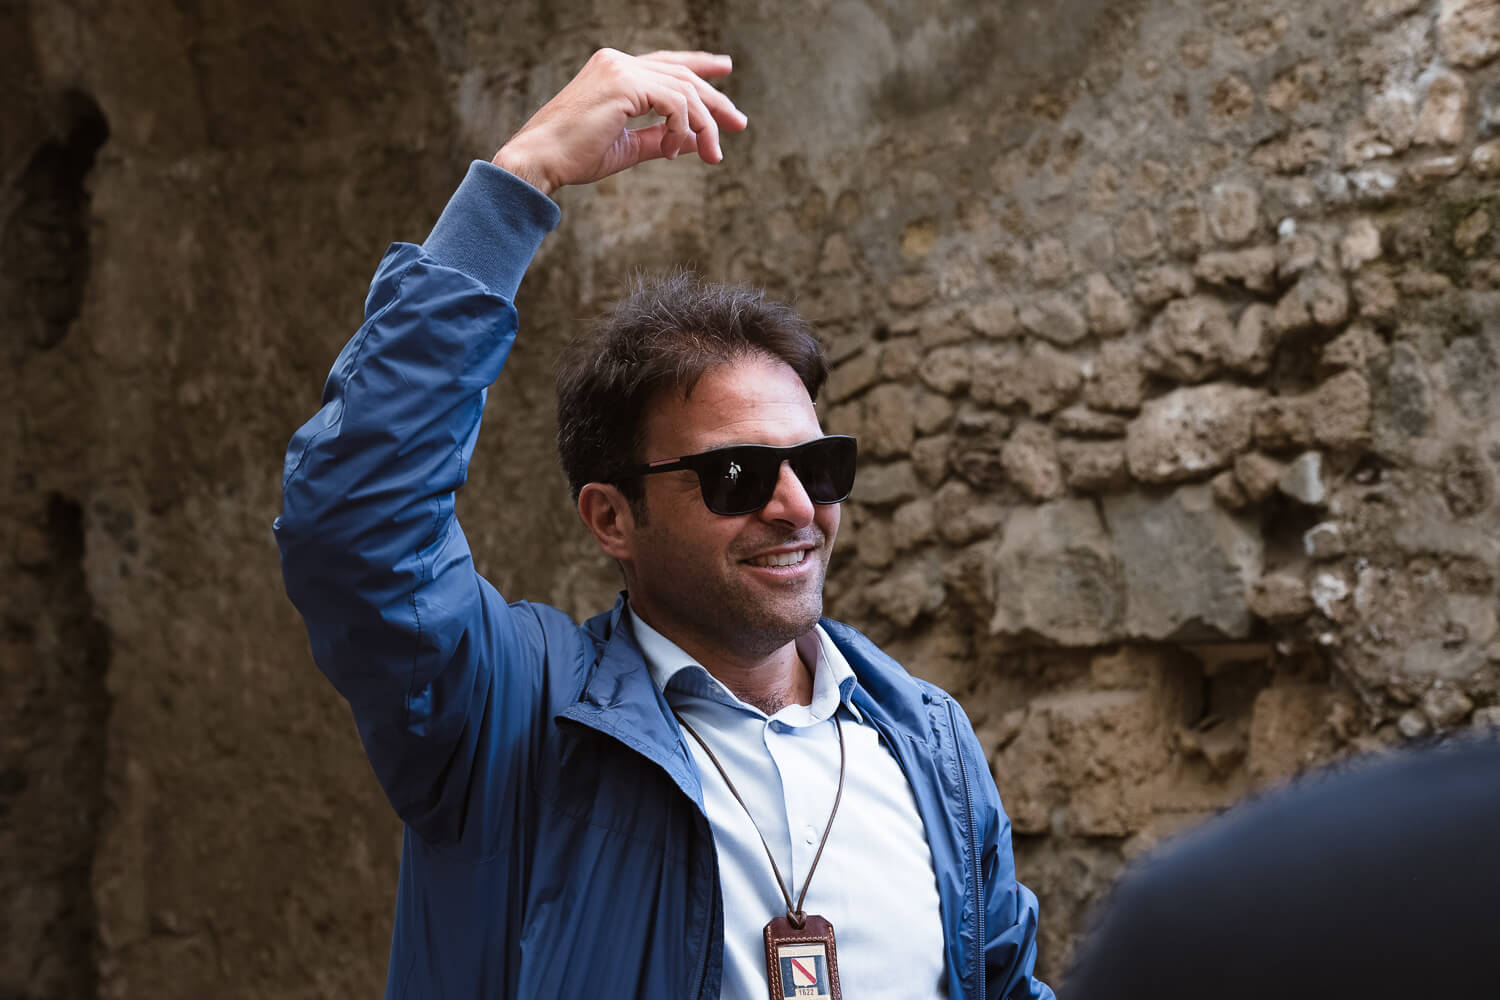 """Licensed tour guide, Paolo for Pompeii. Travel photography and guide by © Natasha Lequepeys for """"And Then I Met Yoko"""". #pompeii #italy #fujifilm #travelphotography"""